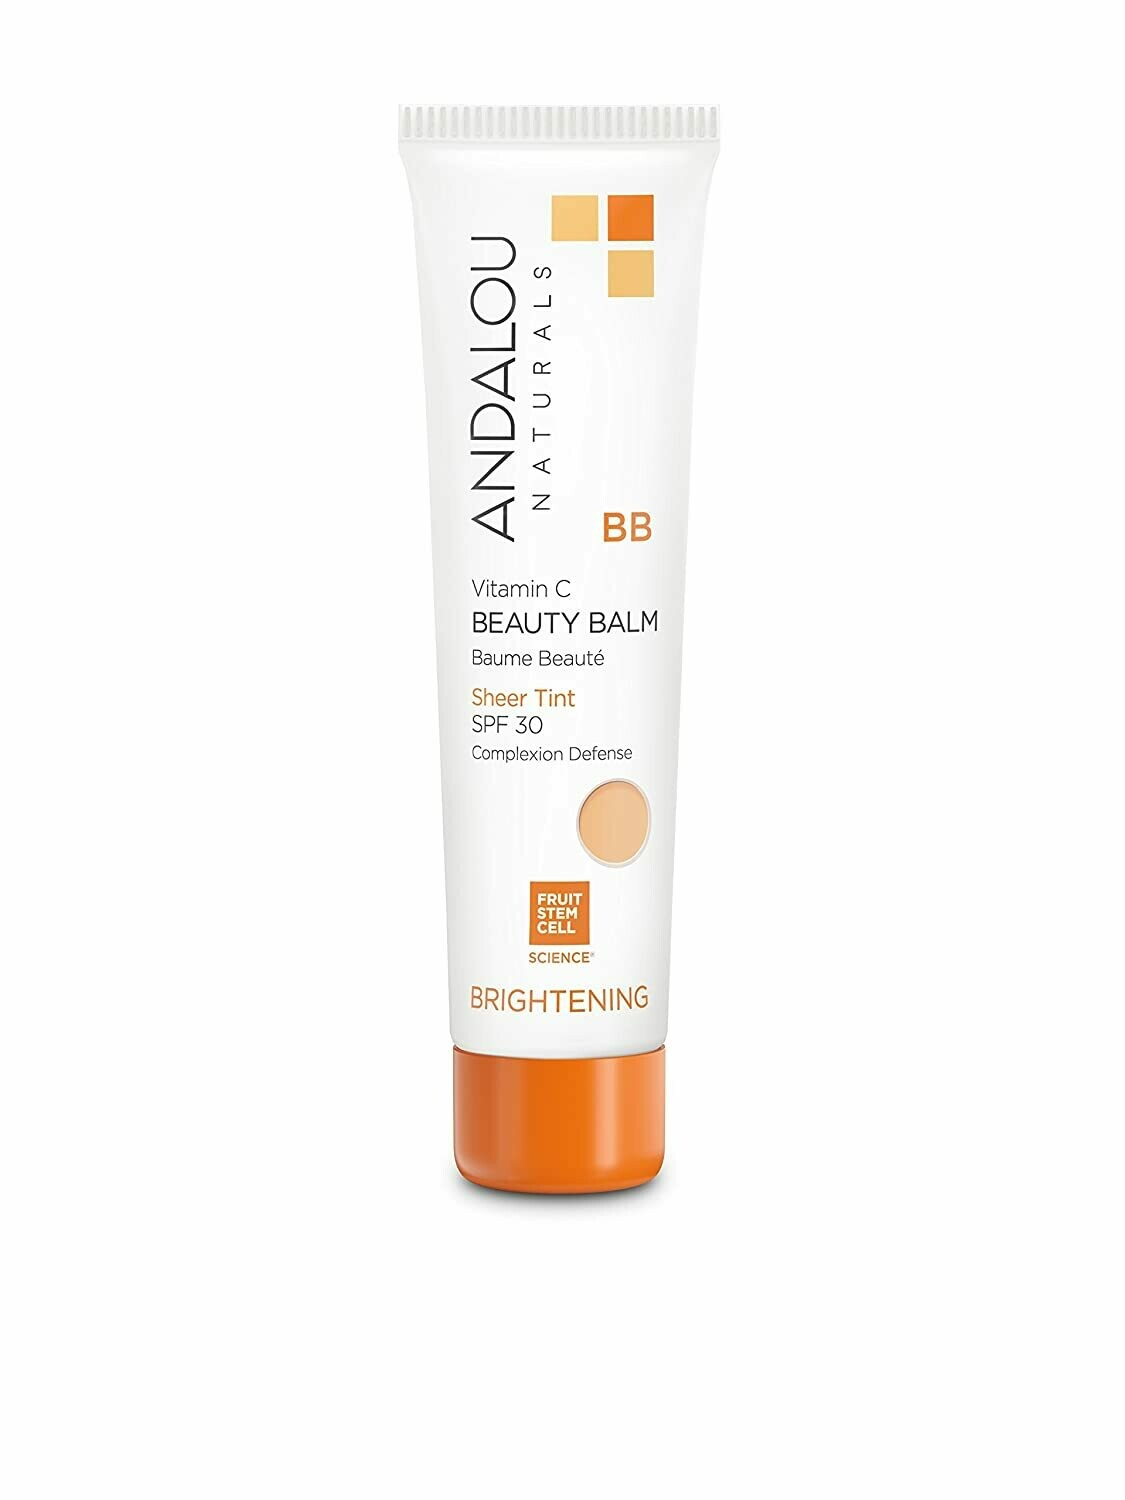 Andalou Naturals Beauty Balm Sheer Tinted Moisturizer with SPF 30, 2 Ounce